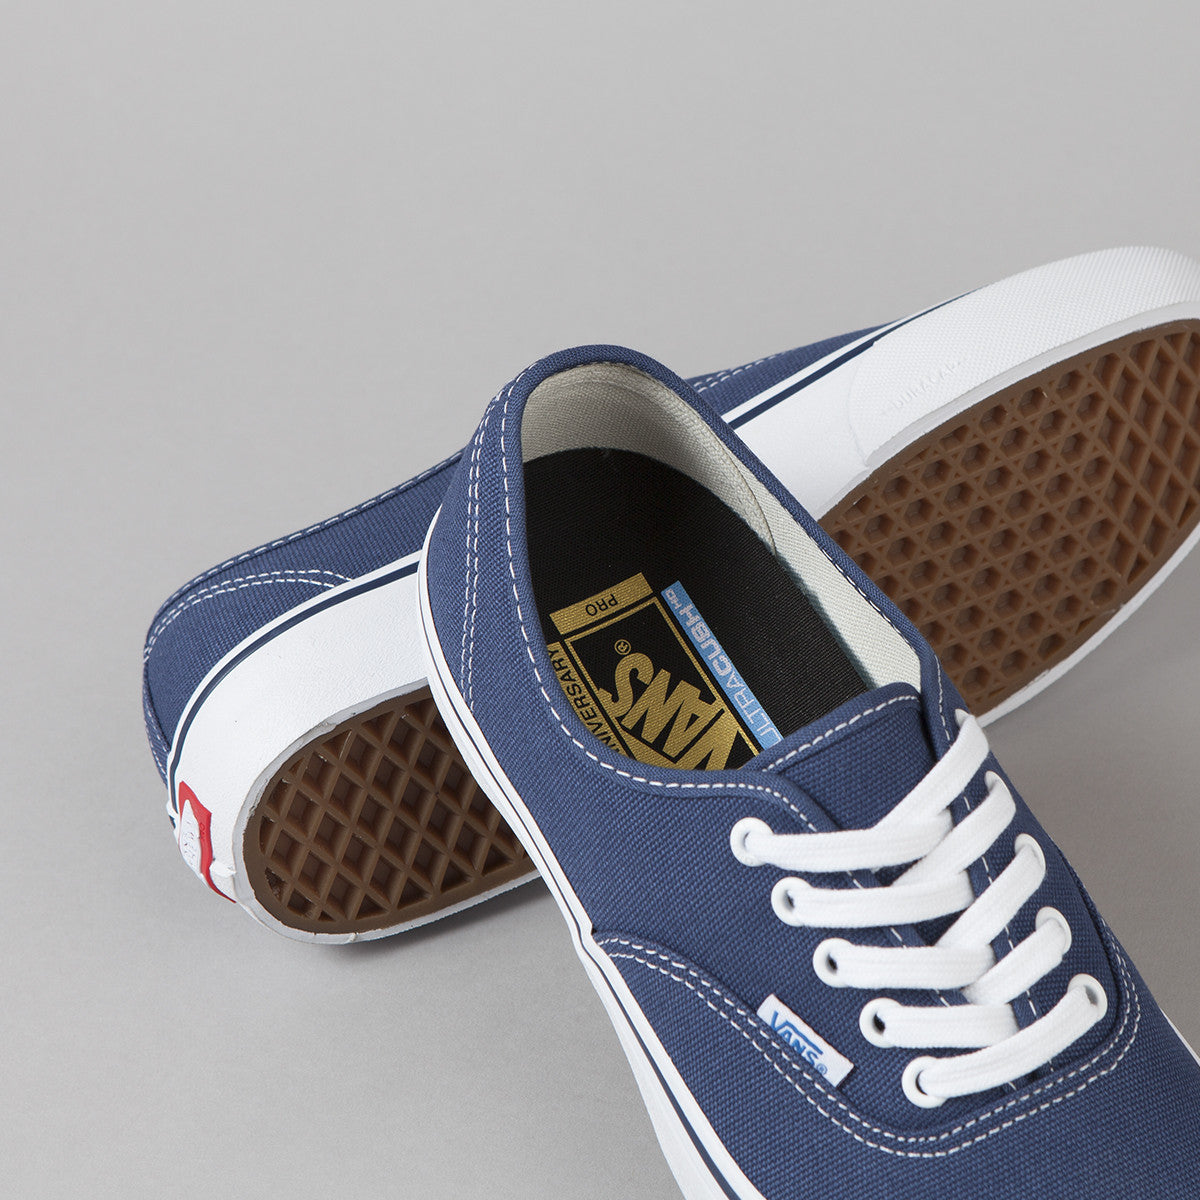 Vans 50th Authentic Pro '74 Shoes - Navy / White